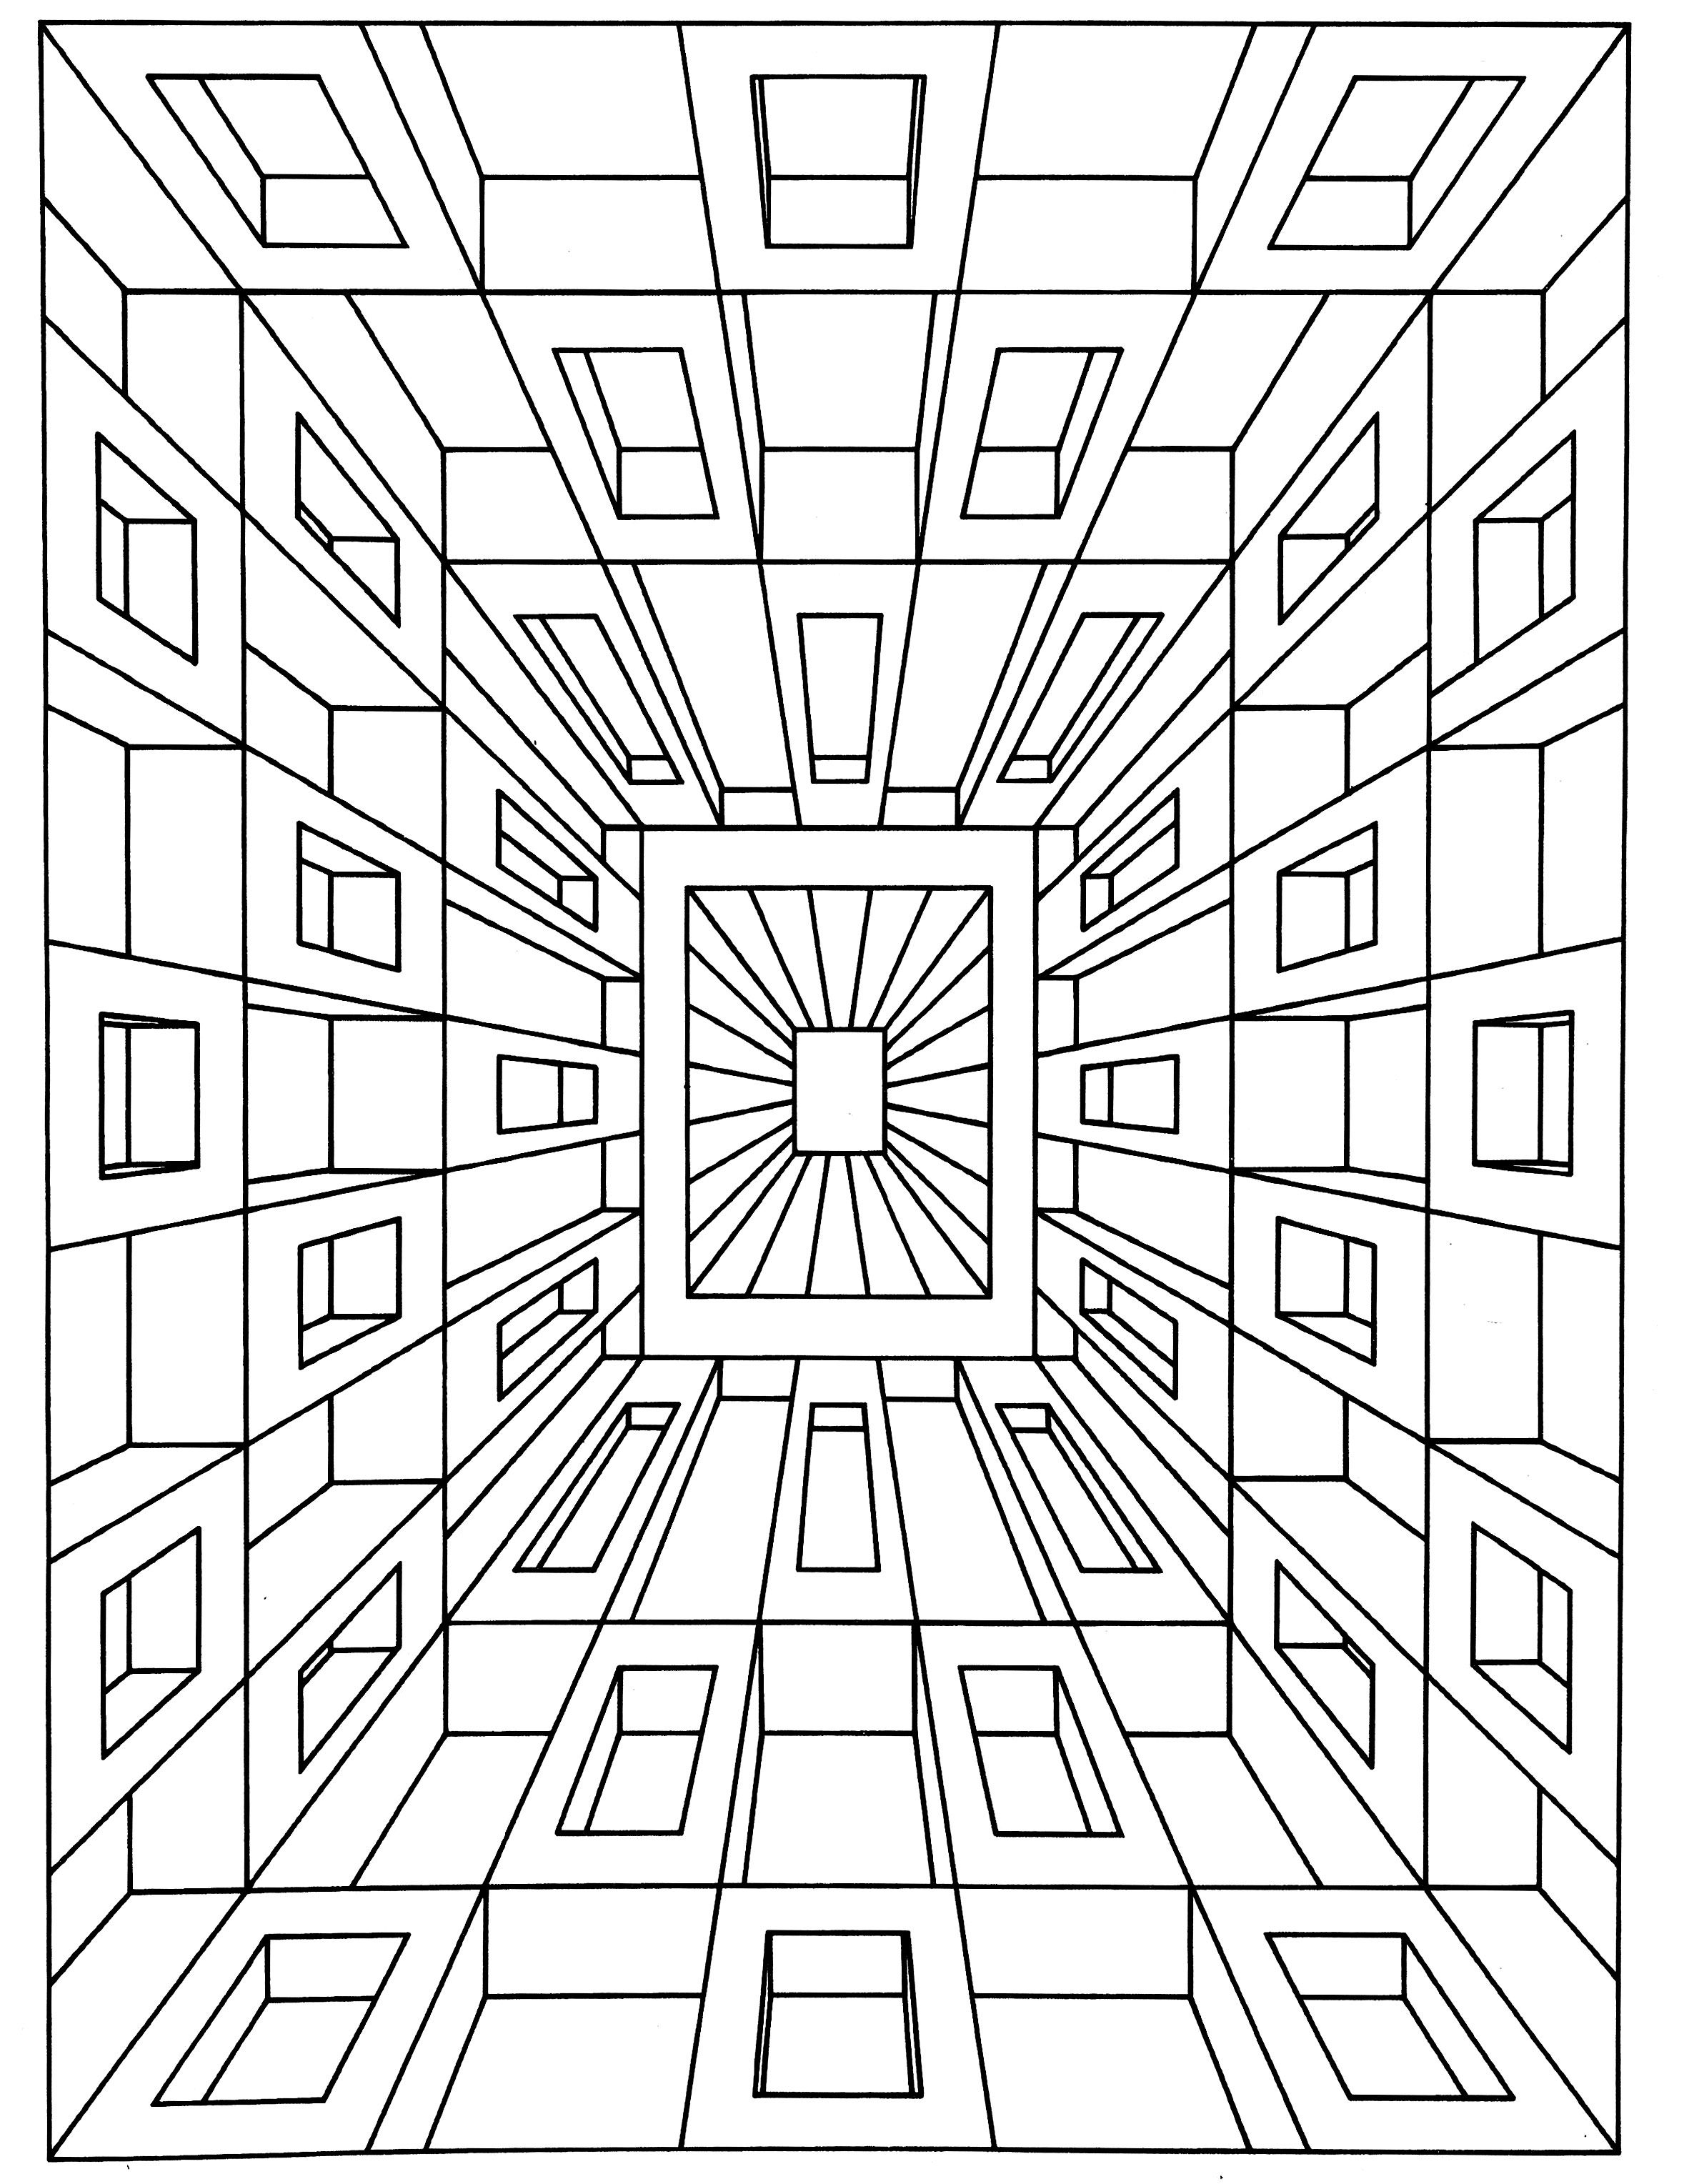 Optical Illusion Coloring Pages  Printable 3k - To print for your project